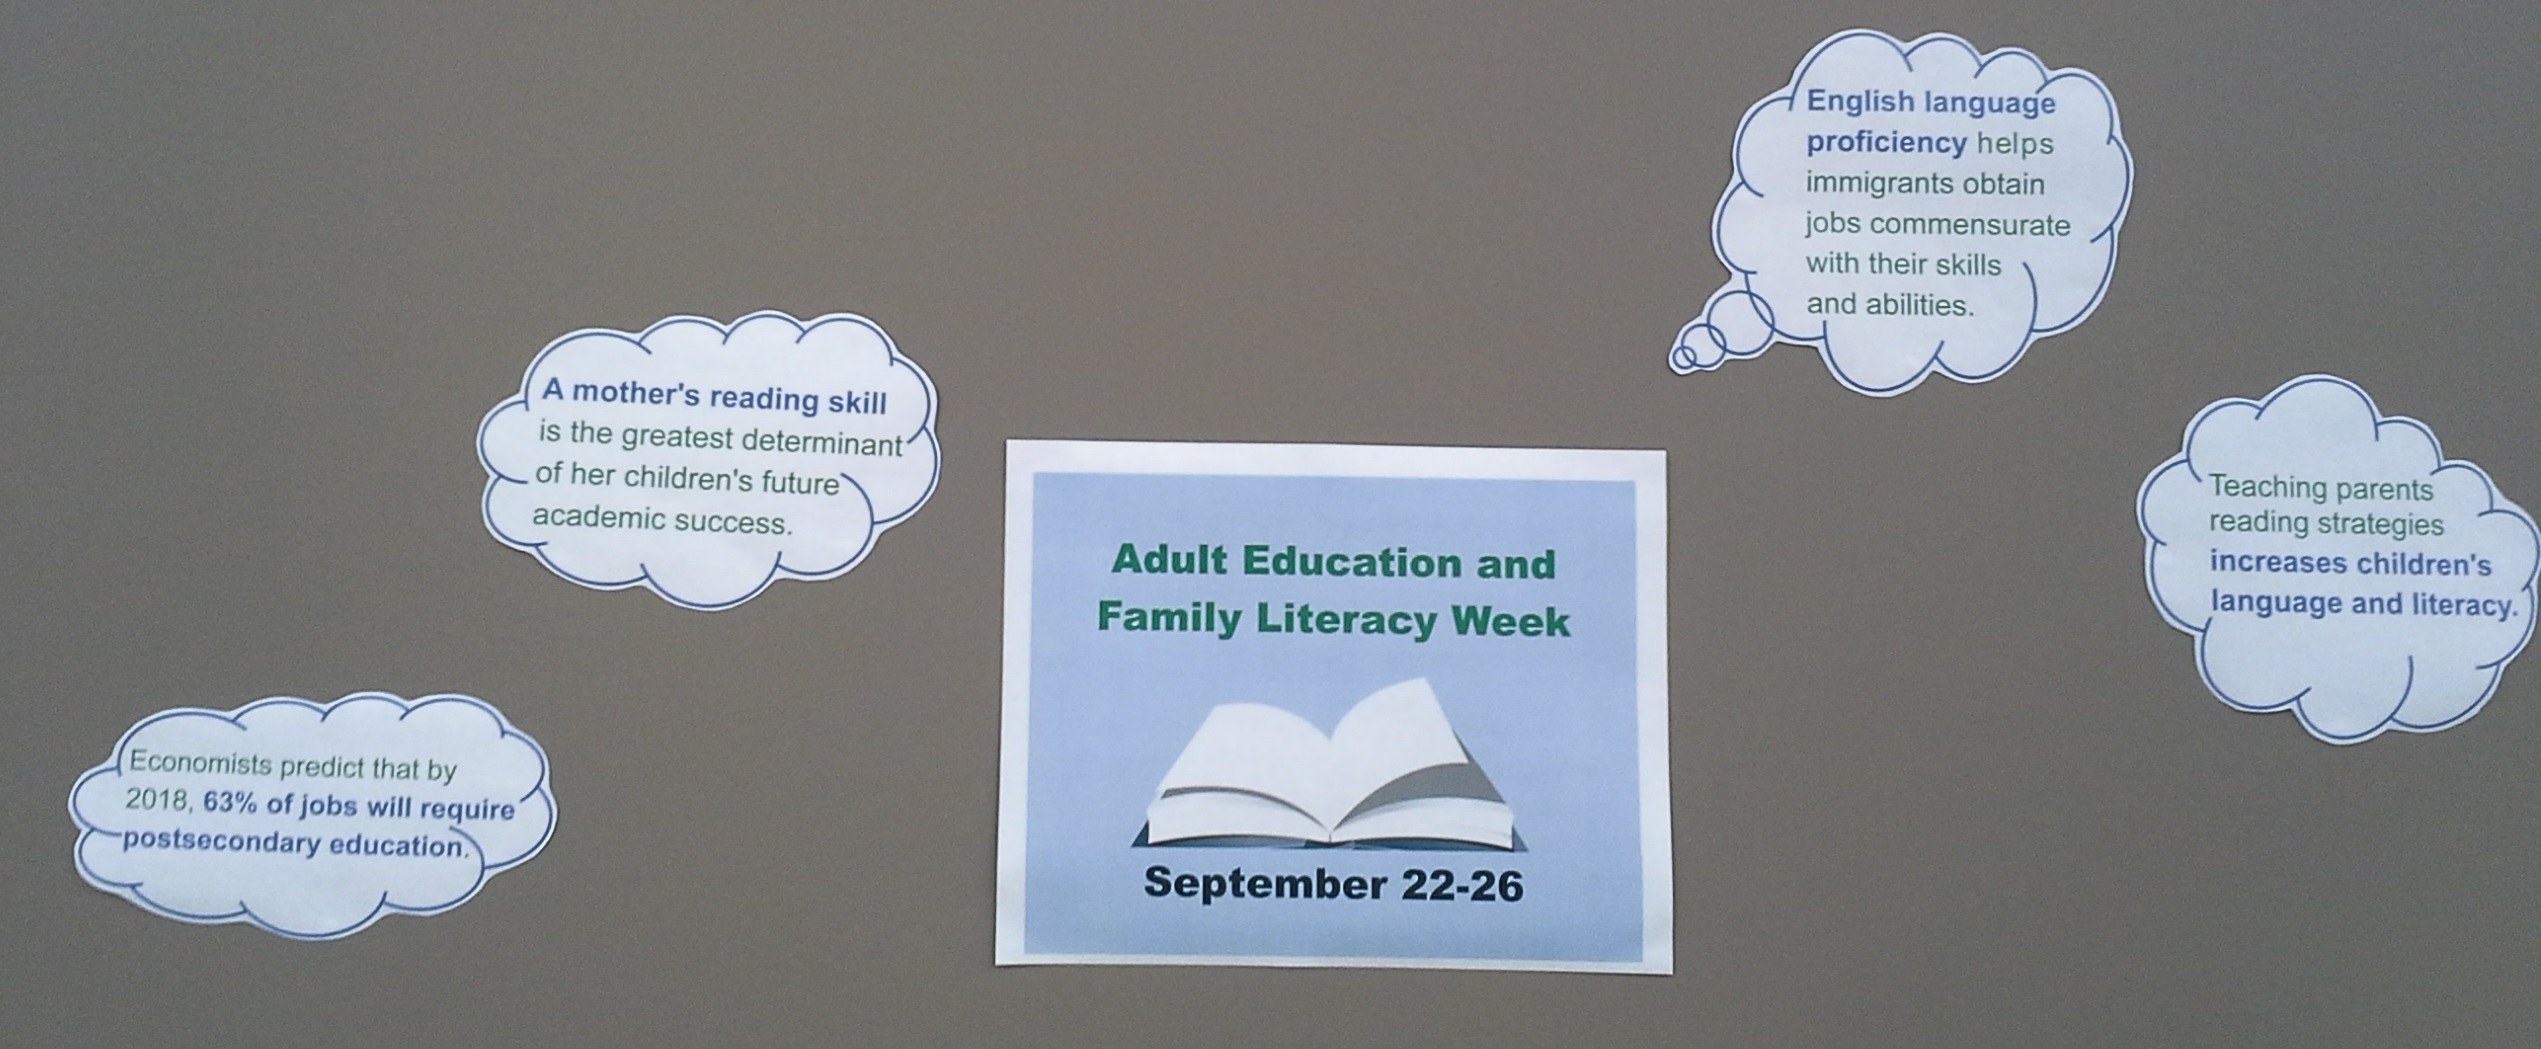 Adult Education and Family Literacy facts